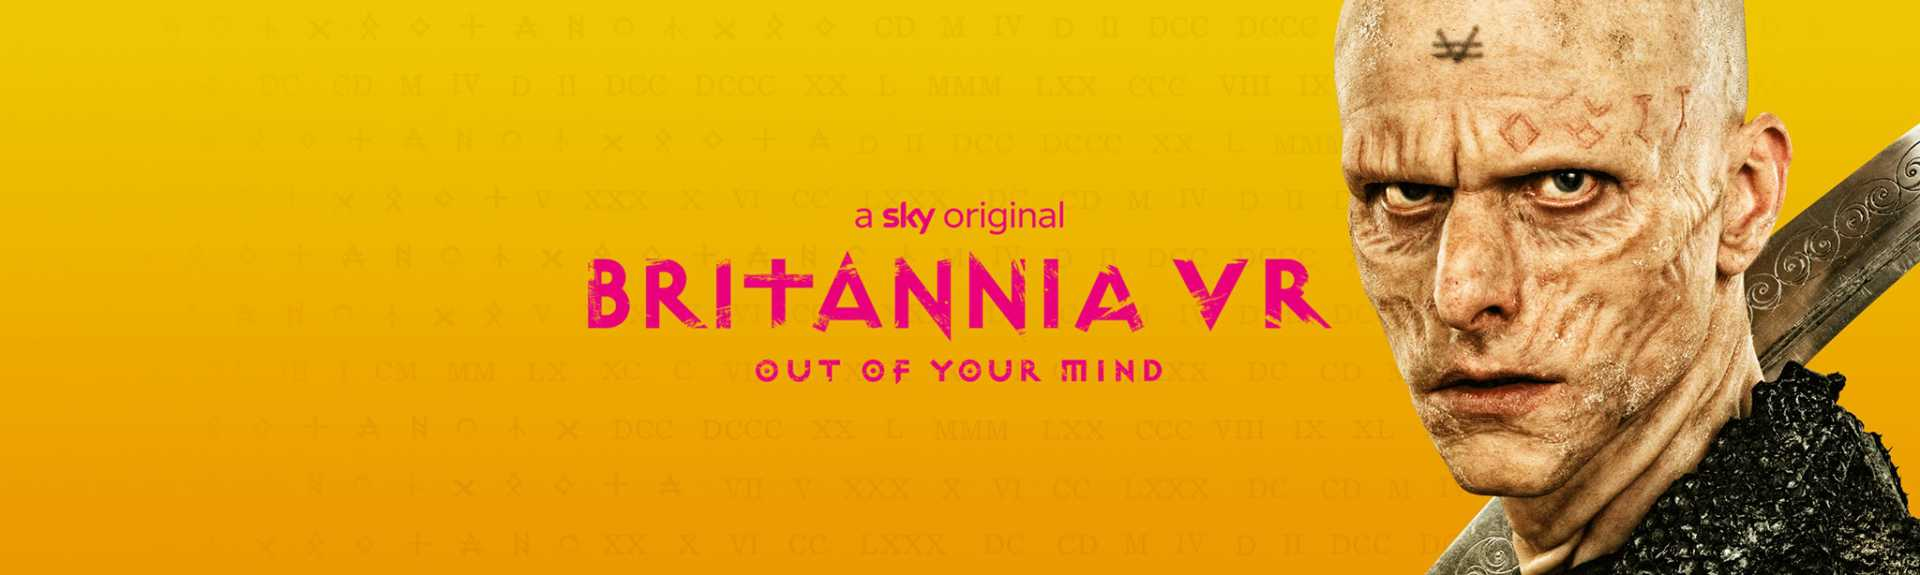 Sky VR: Britannia VR - Out of Your Mind